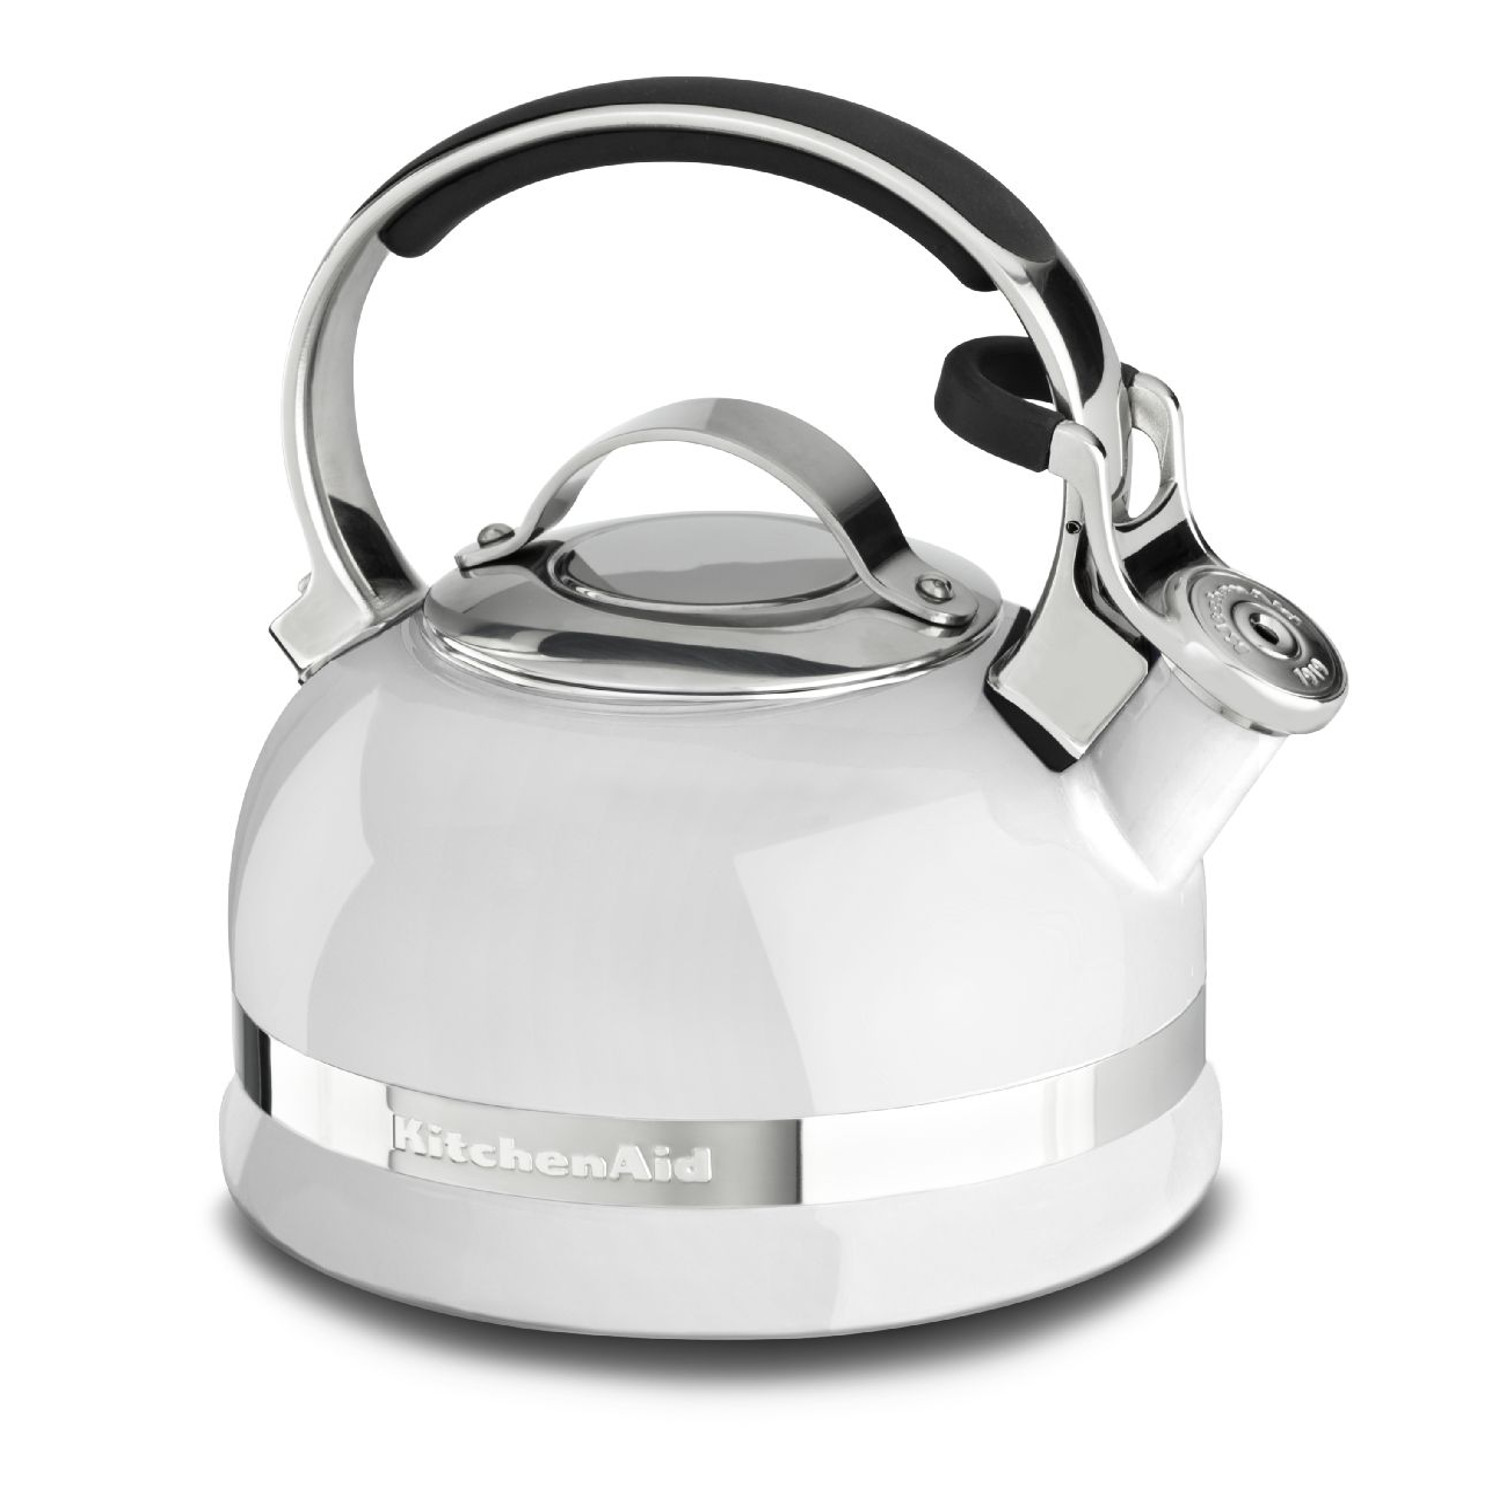 KitchenAid KTEN20SBWH White 2 Quart Kettle with Full Stainless Steel Handle and Trim Band